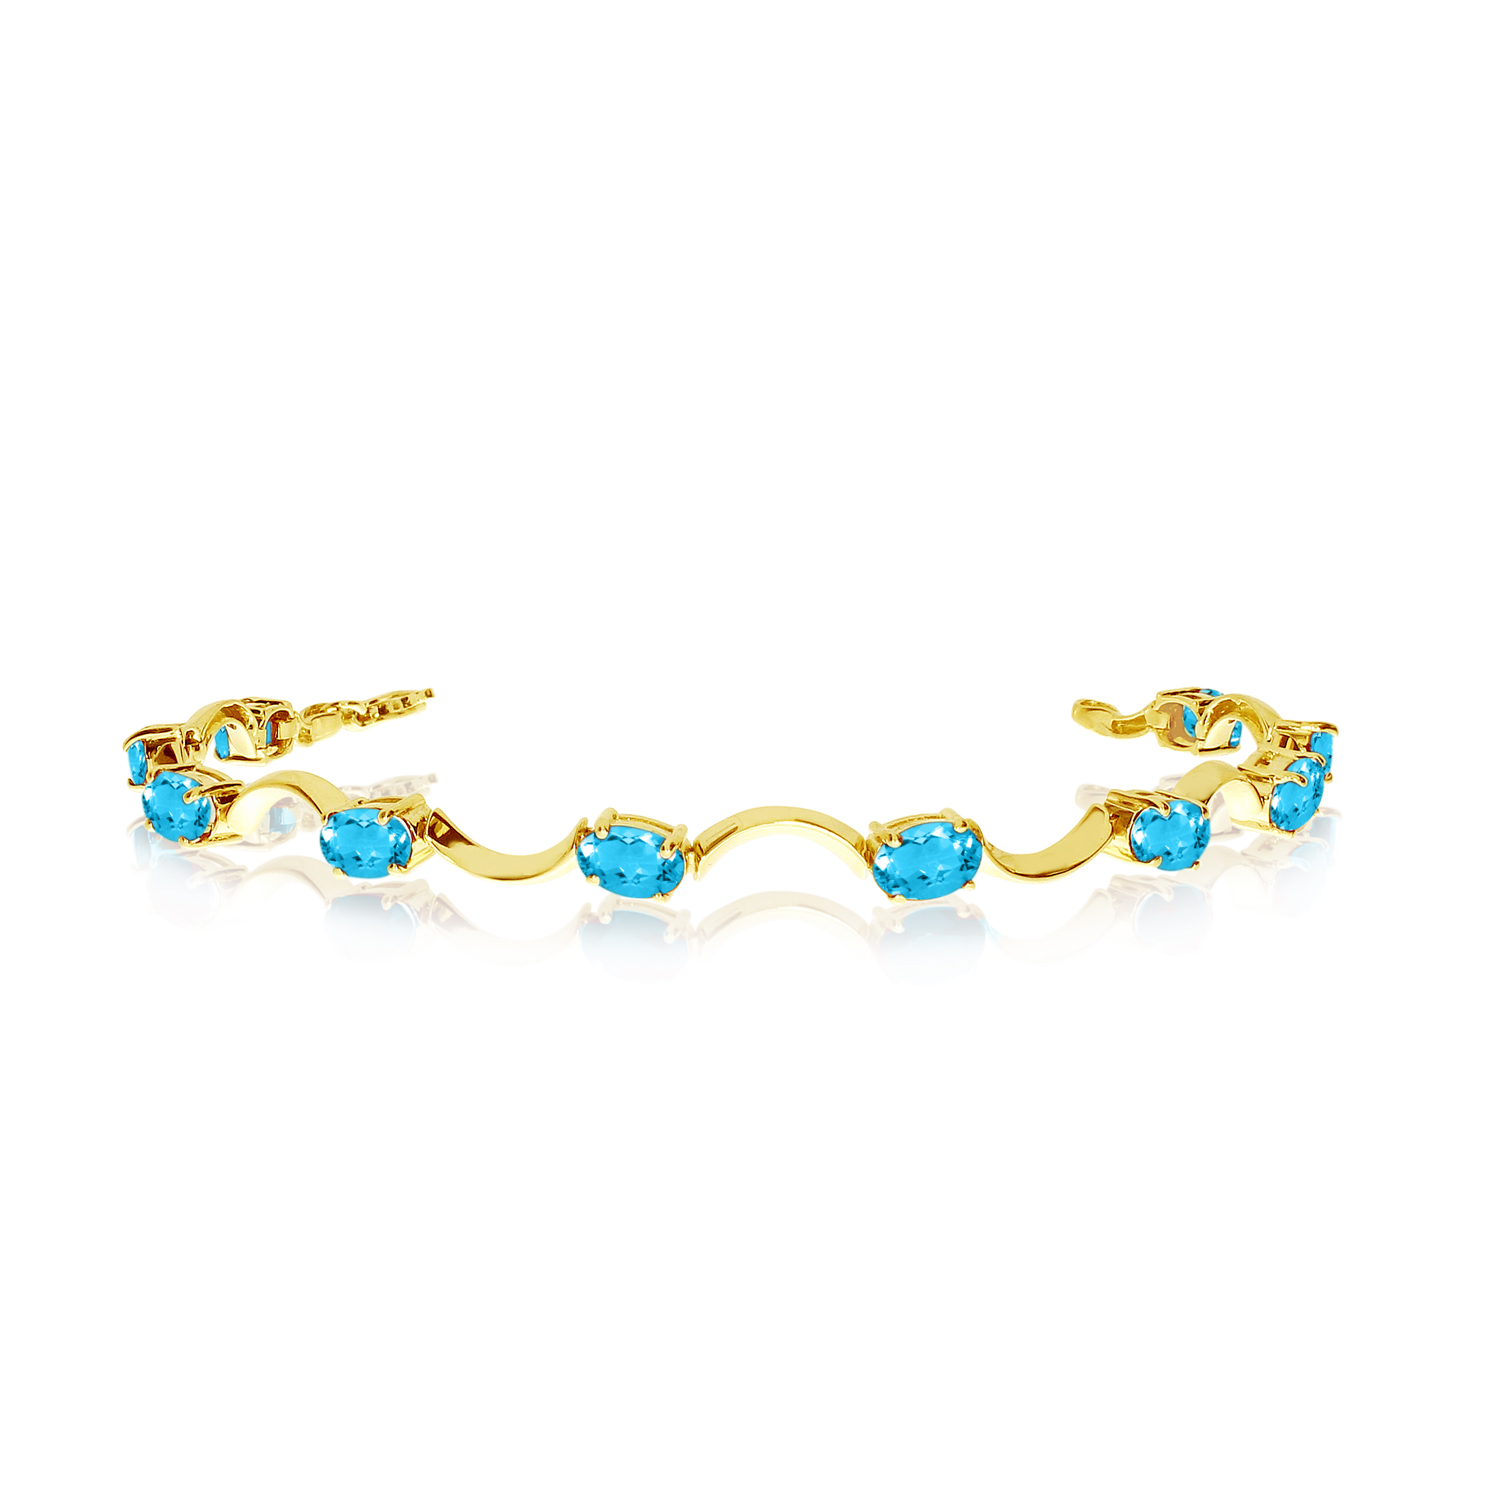 14K Yellow Gold Oval Blue Topaz Curved Bar Bracelet by